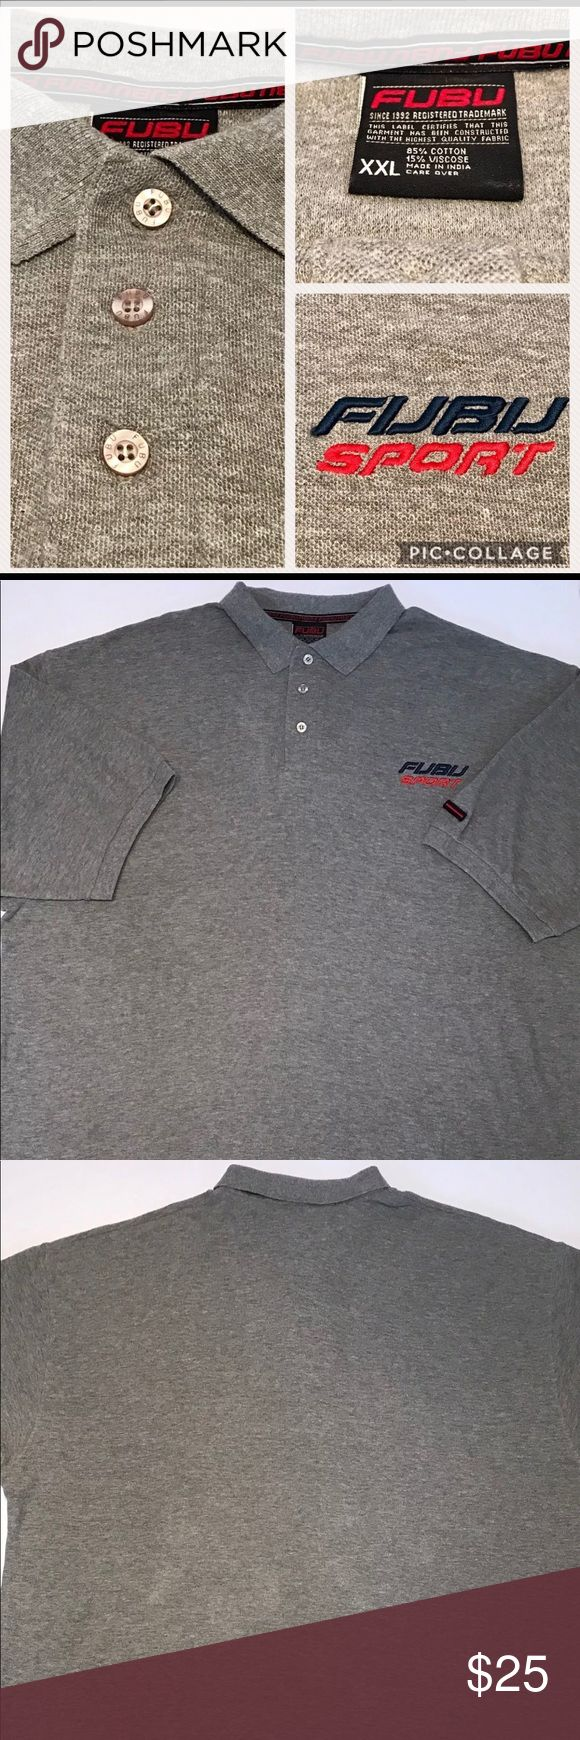 Vintage 90's Fubu Sport XXL Polo Shirt Spellout Description: Vintage 90's Fubu Sport Polo Shirt--Embroidered Spell Out  Condition: Good, used condition with no rips, tears, or stains  Material: 85% Cotton, 15% Viscose  Tag Size:    XXL (Please see actual measurements below)  Measurements: (measurements are given in inches)                              Shoulder to Shoulder:27.5                             Underarm to Underarm: 29                             Sleeve Length:13…